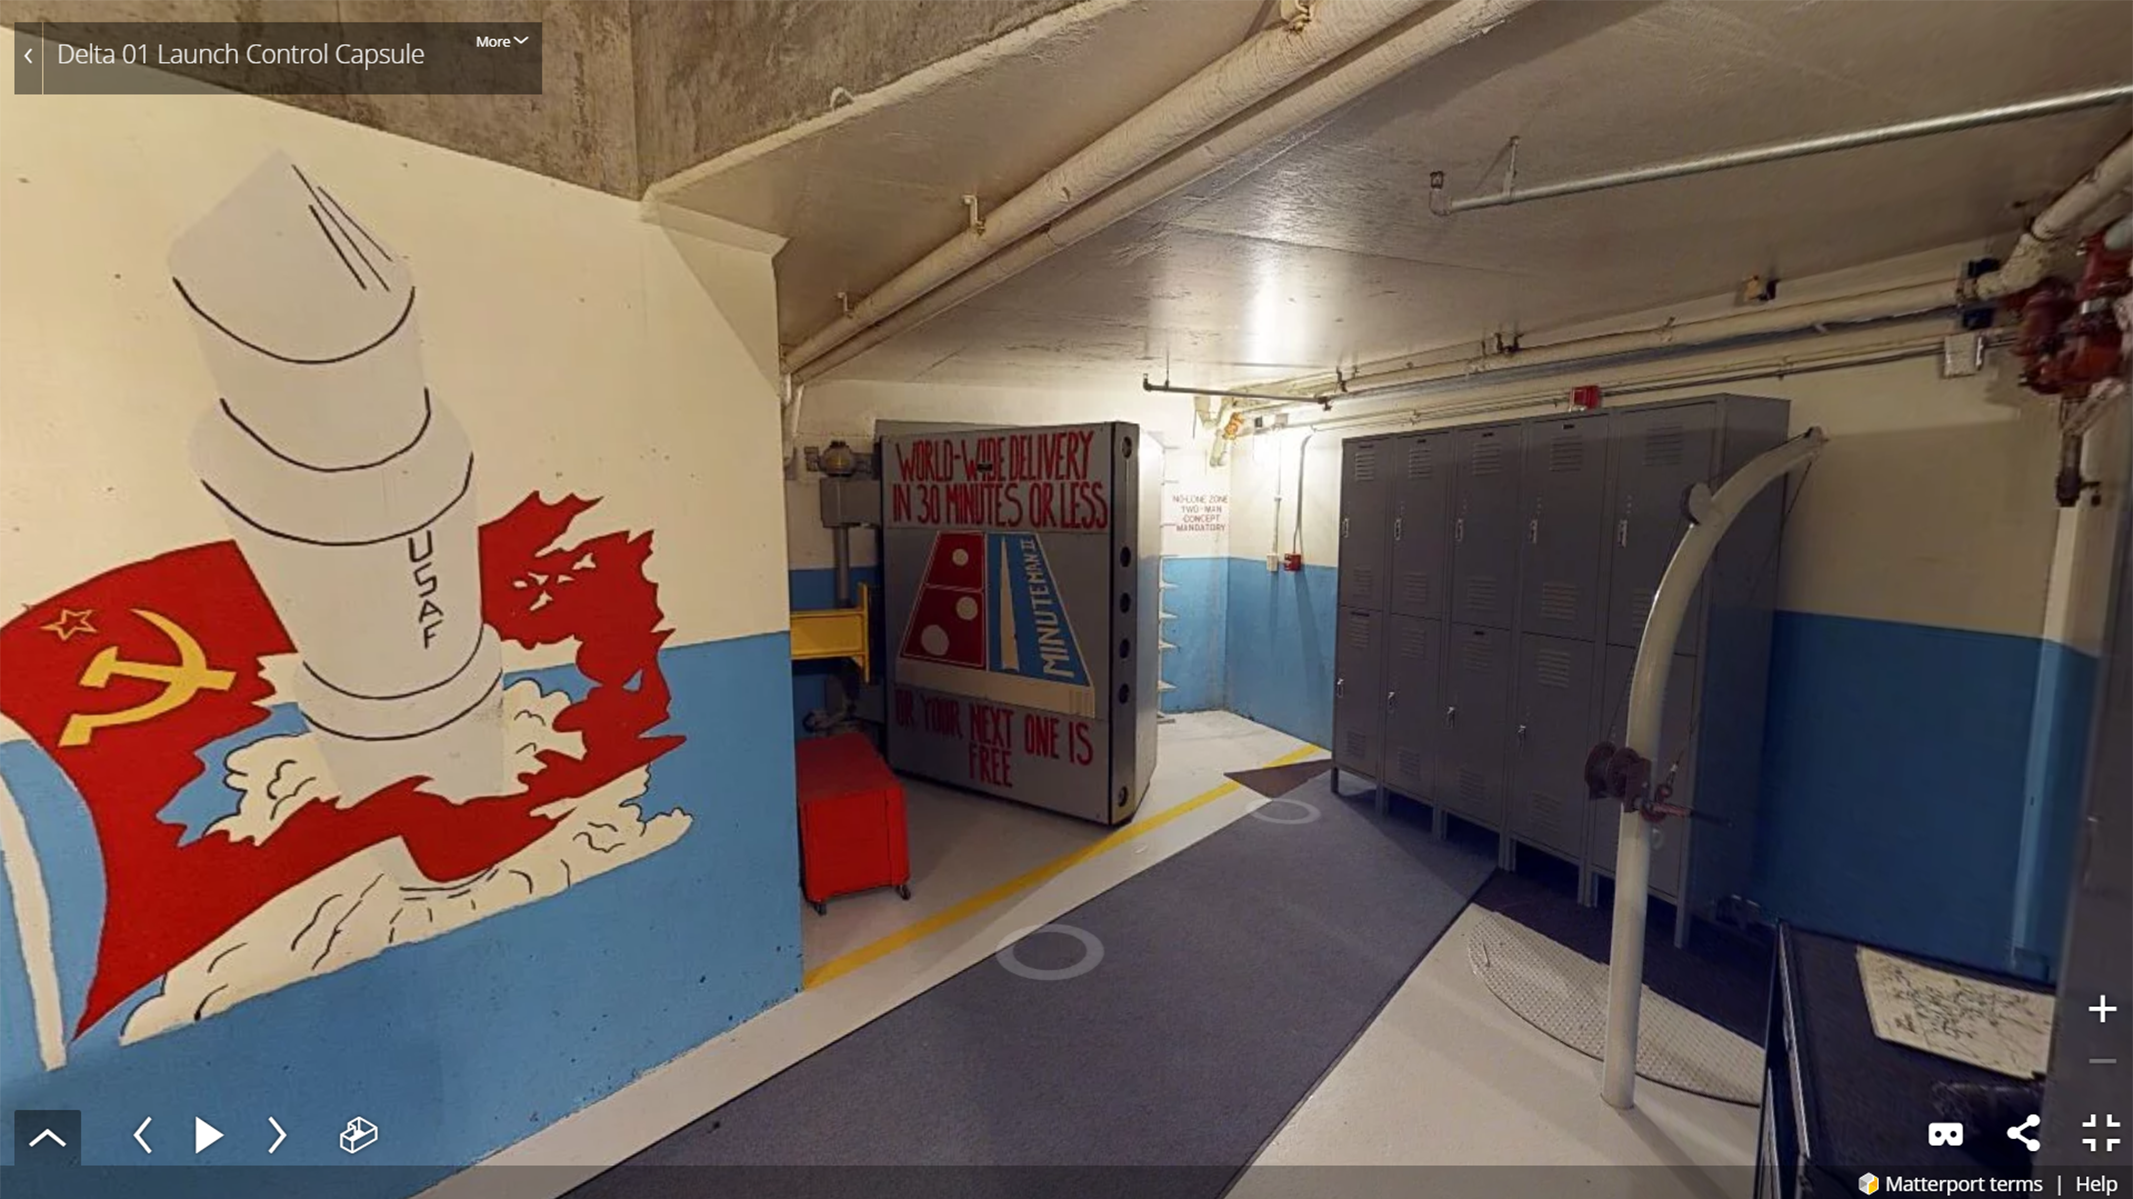 Screenshot of virtual tour showing an underground space